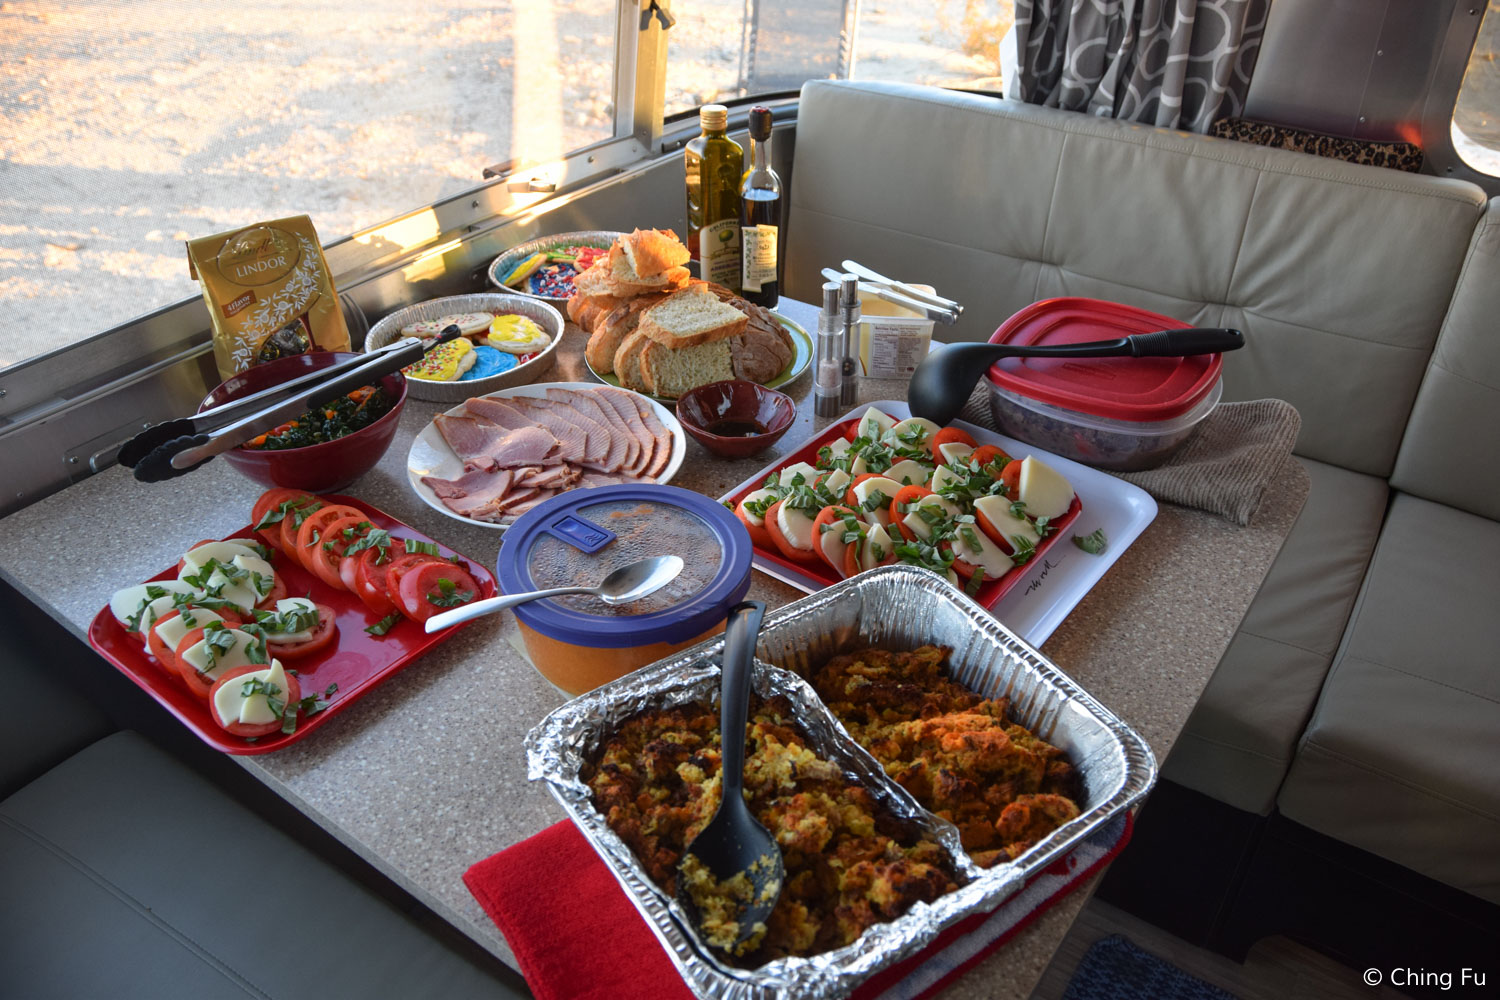 Some of the food that was at the Christmas dinner potluck.